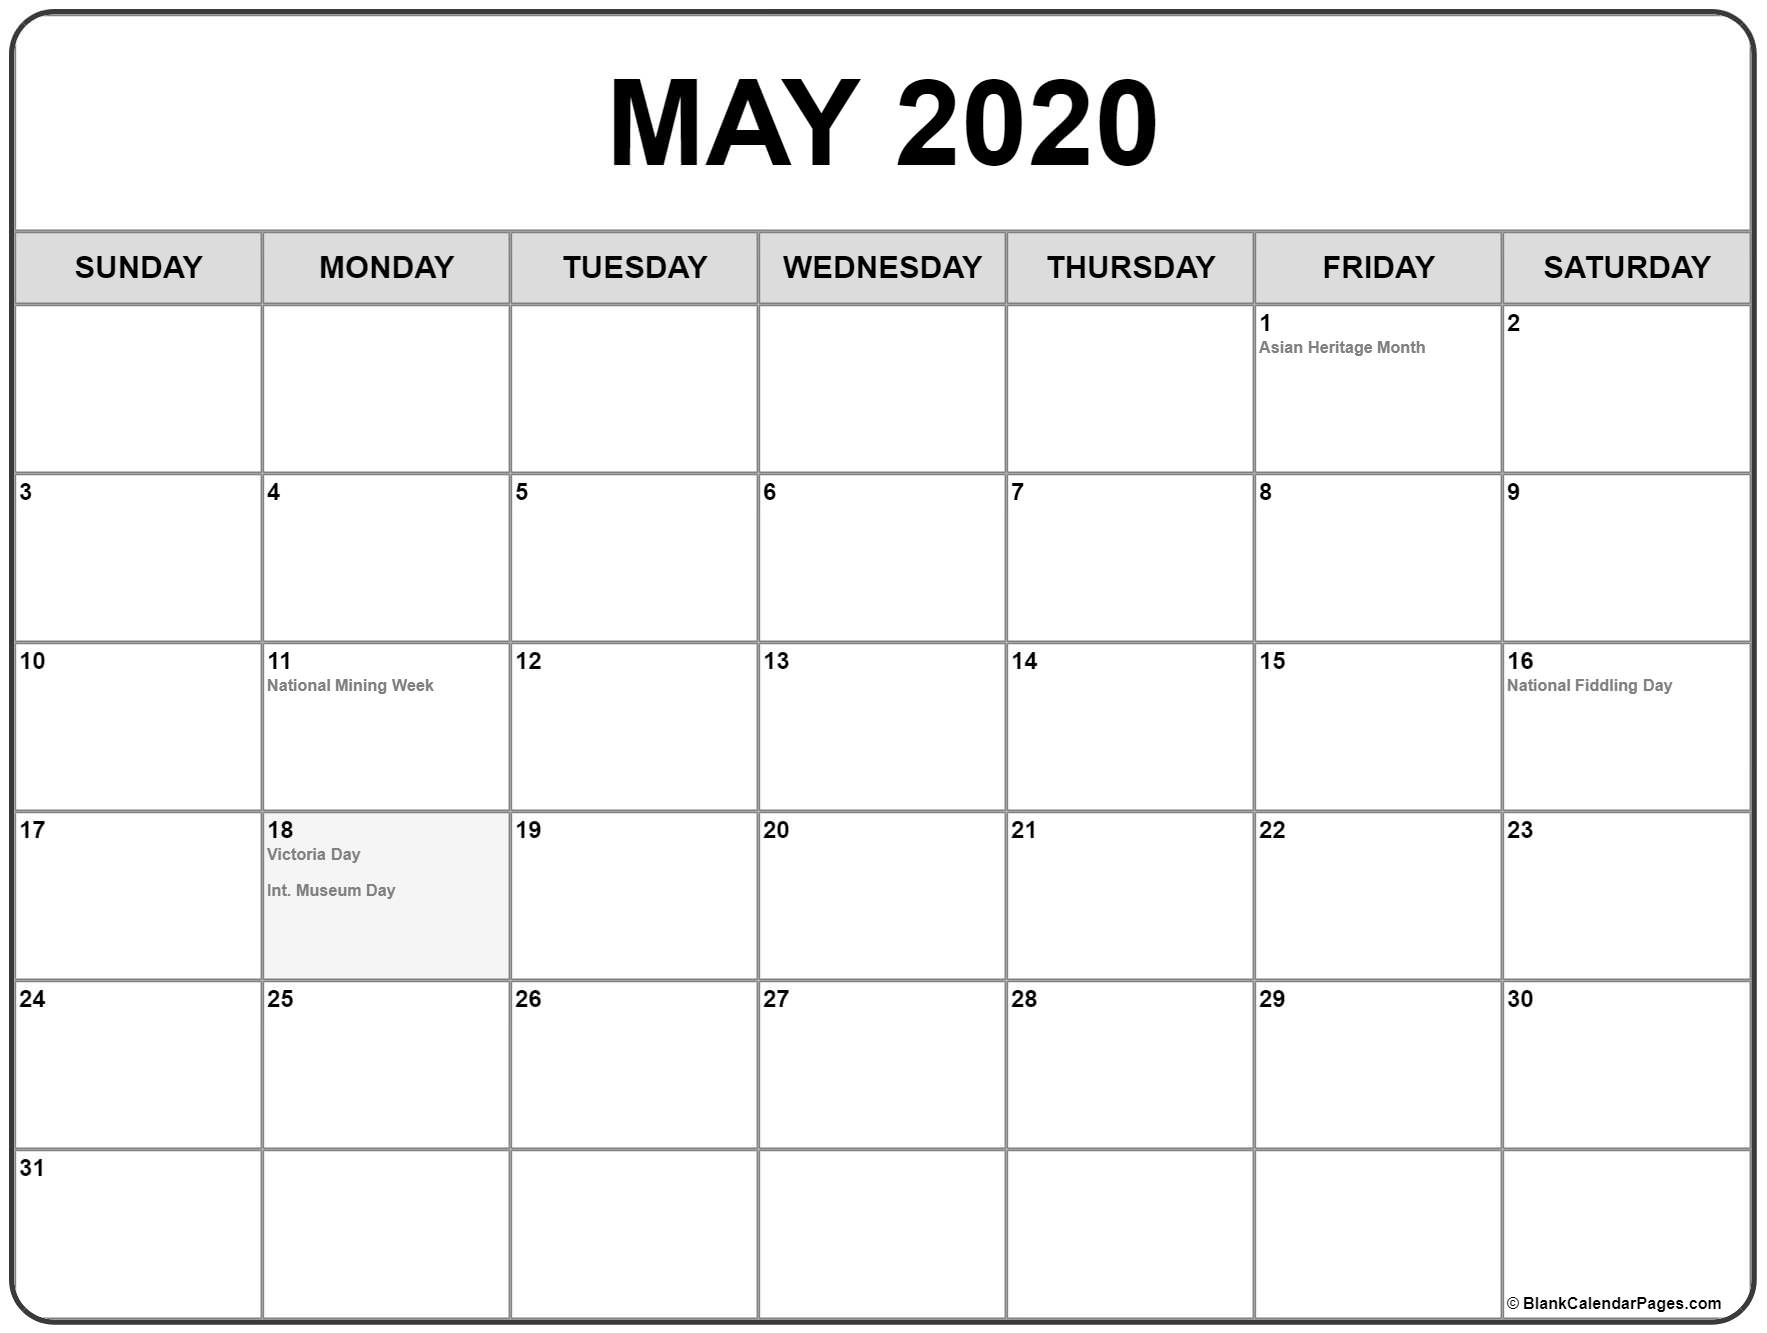 Collection Of May 2020 Calendars With Holidays May 2020 Calendar Canada